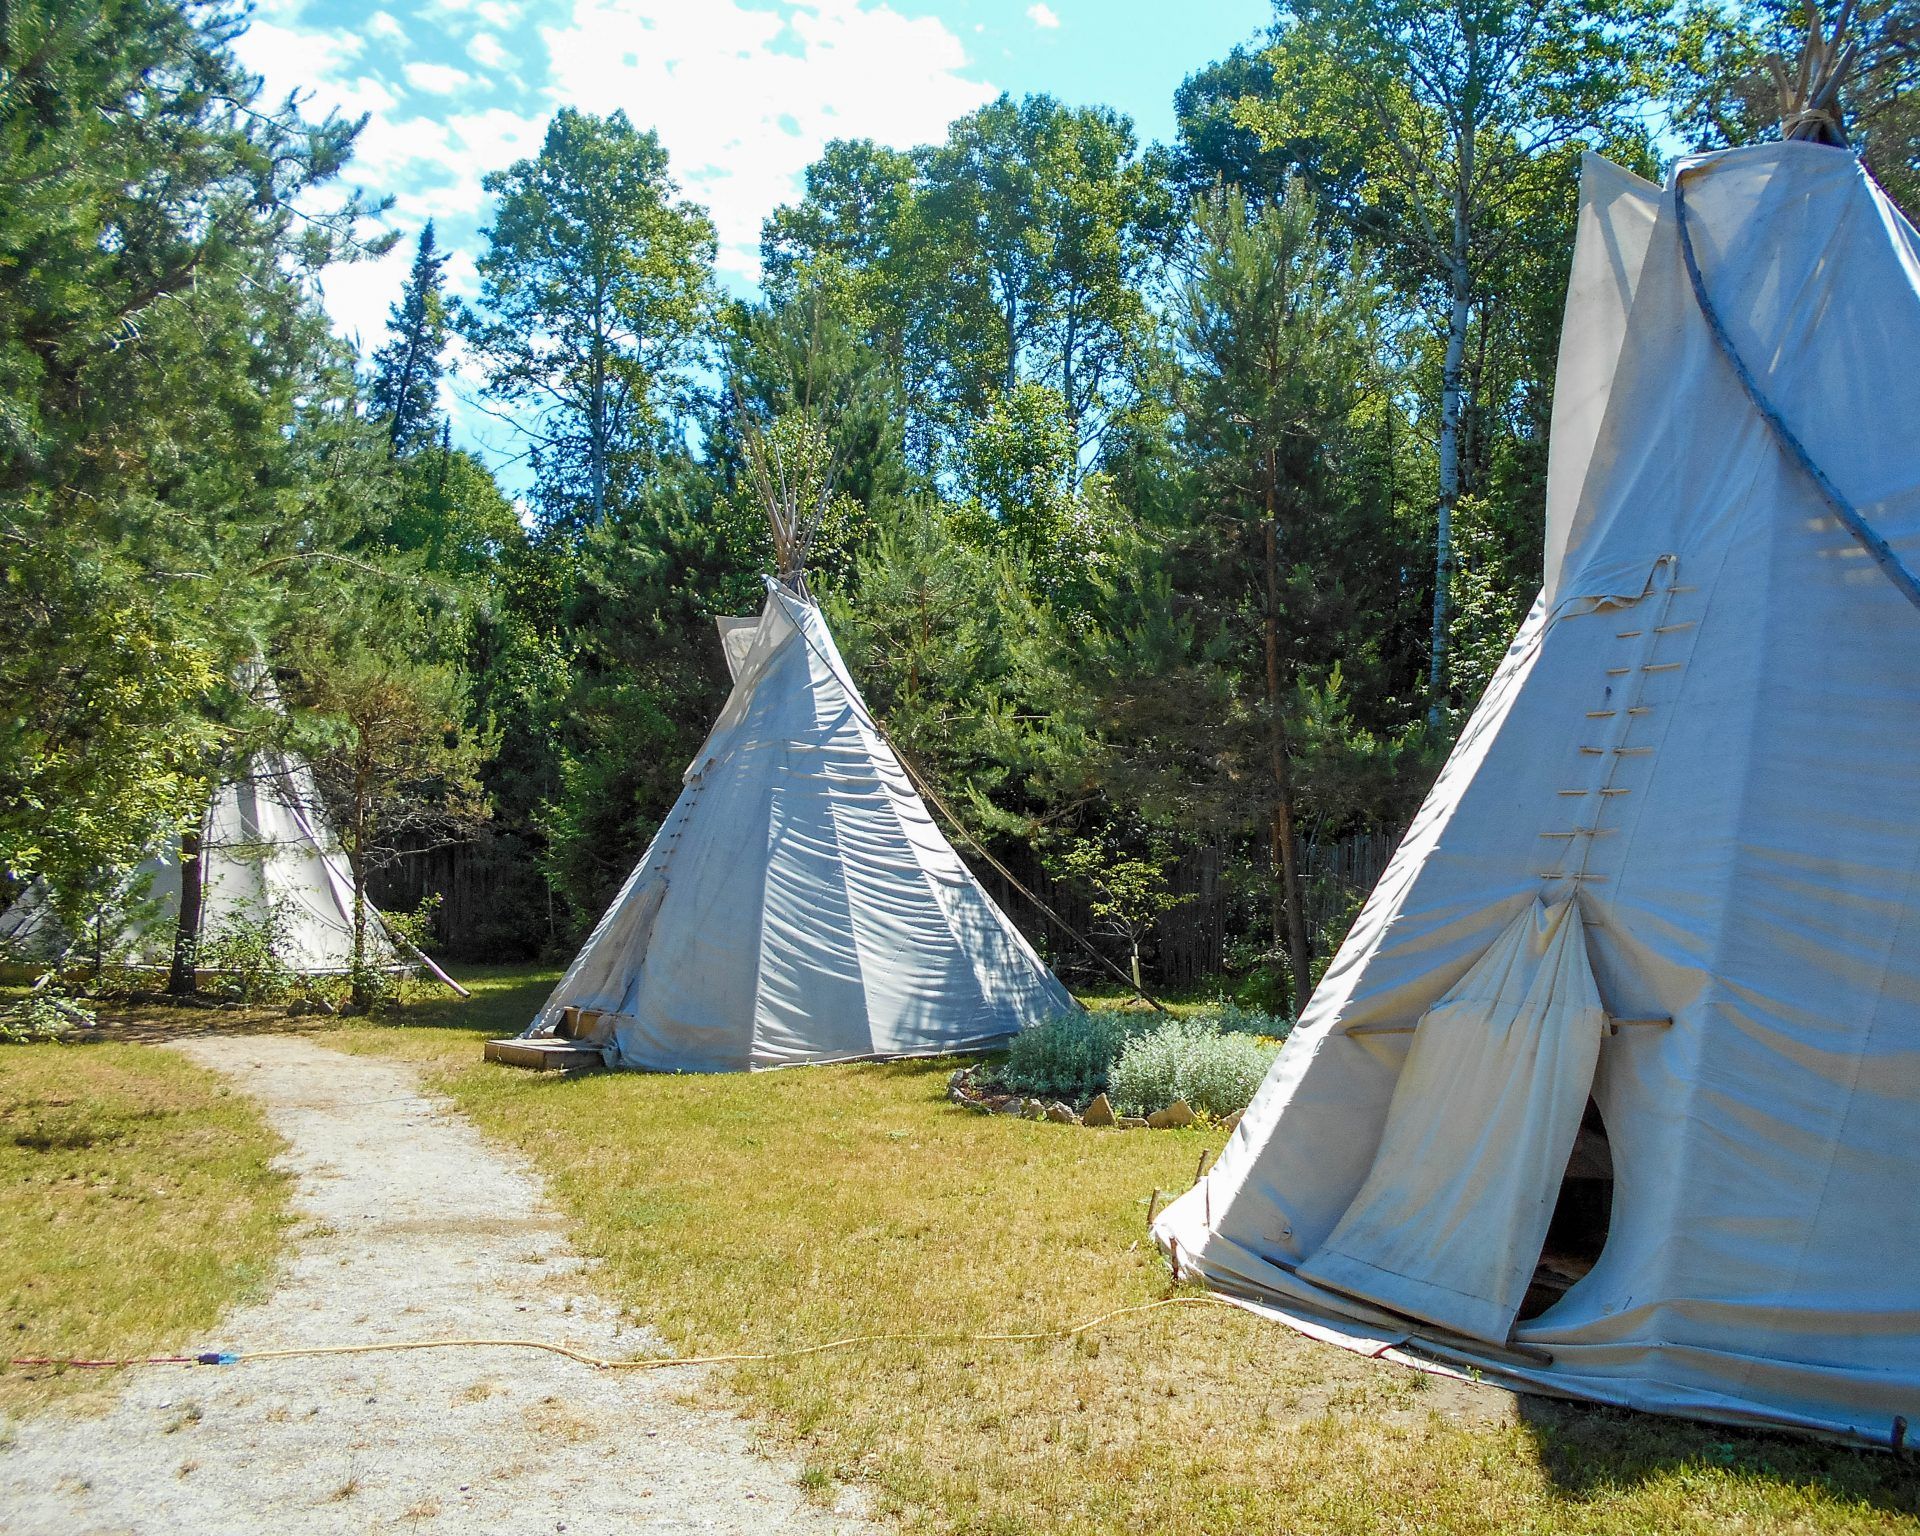 Teepees at the Great Spirit Circle site on Manitoulin Island.